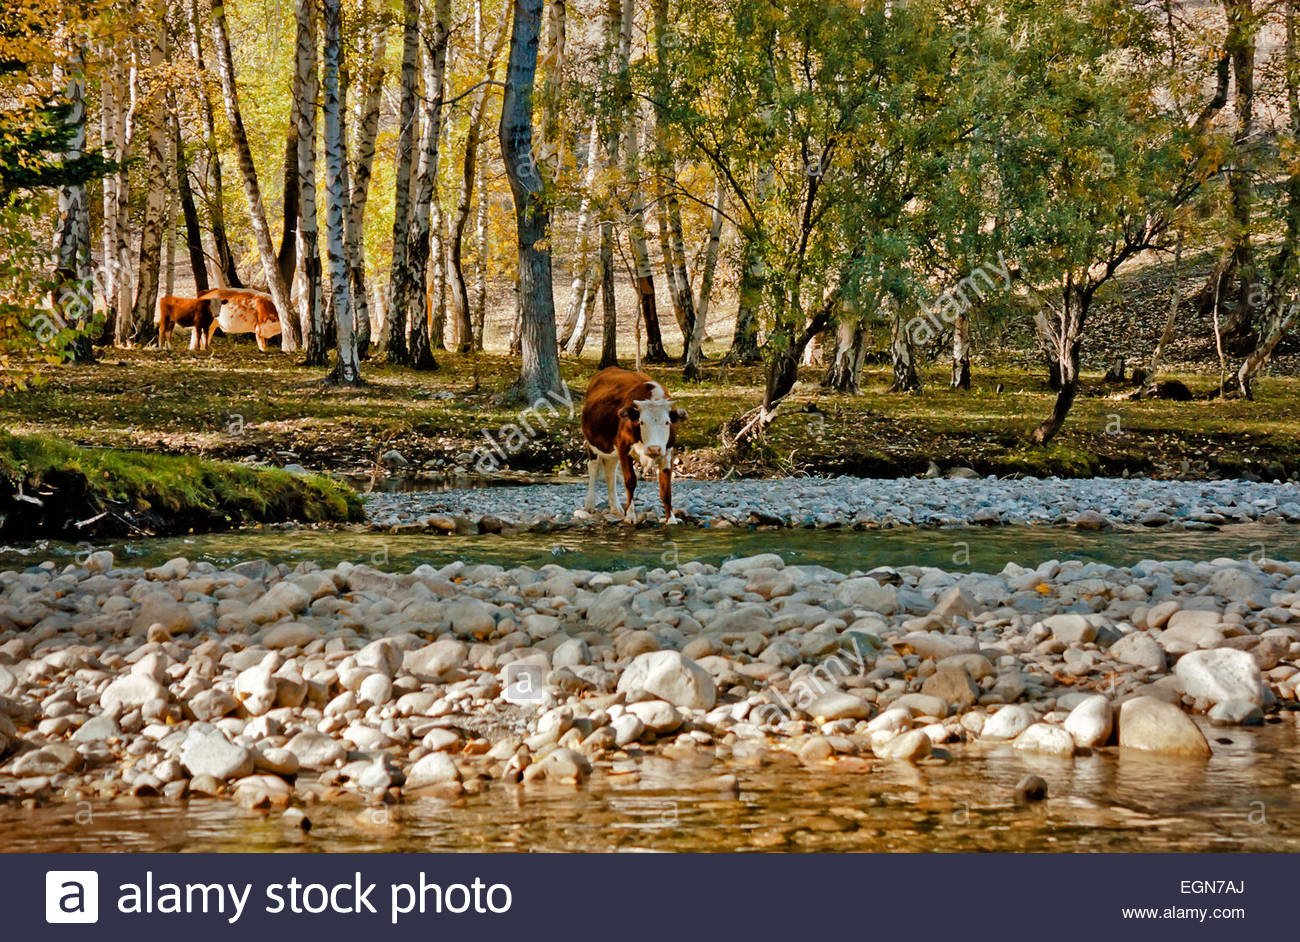 Cow calf drinks water near mountain river in the forest - Stock Image